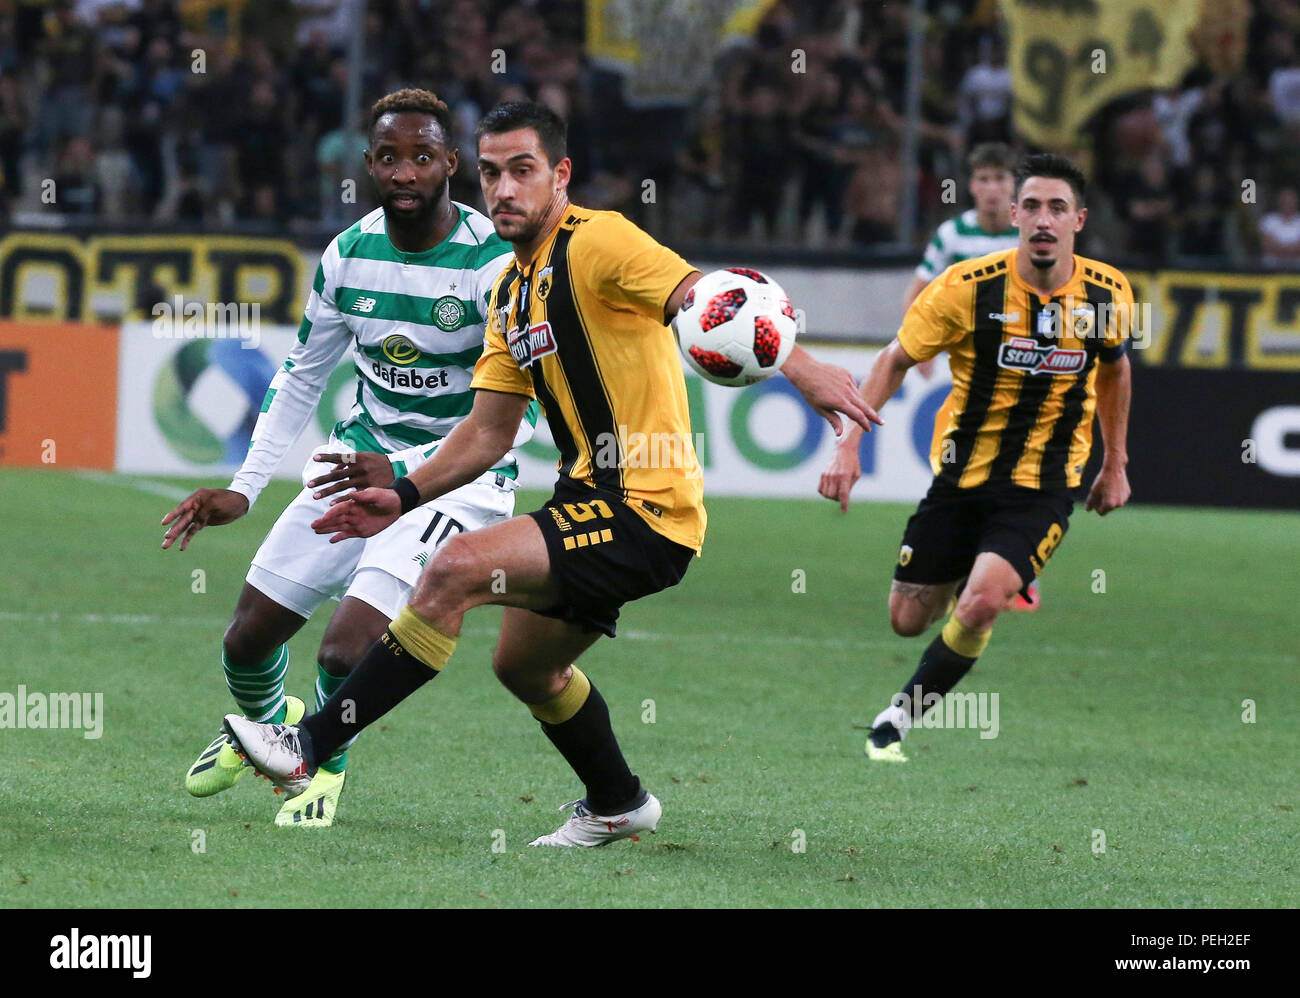 Athens, Greece. 14th Aug, 2018. AEK Athens' Vasileios Lampropoulos (C) vies with Celtic's Moussa Dembele during the third round of Champions League qualifying match in Athens, Greece, Aug. 14, 2018. Credit: Marios Lolos/Xinhua/Alamy Live News - Stock Image